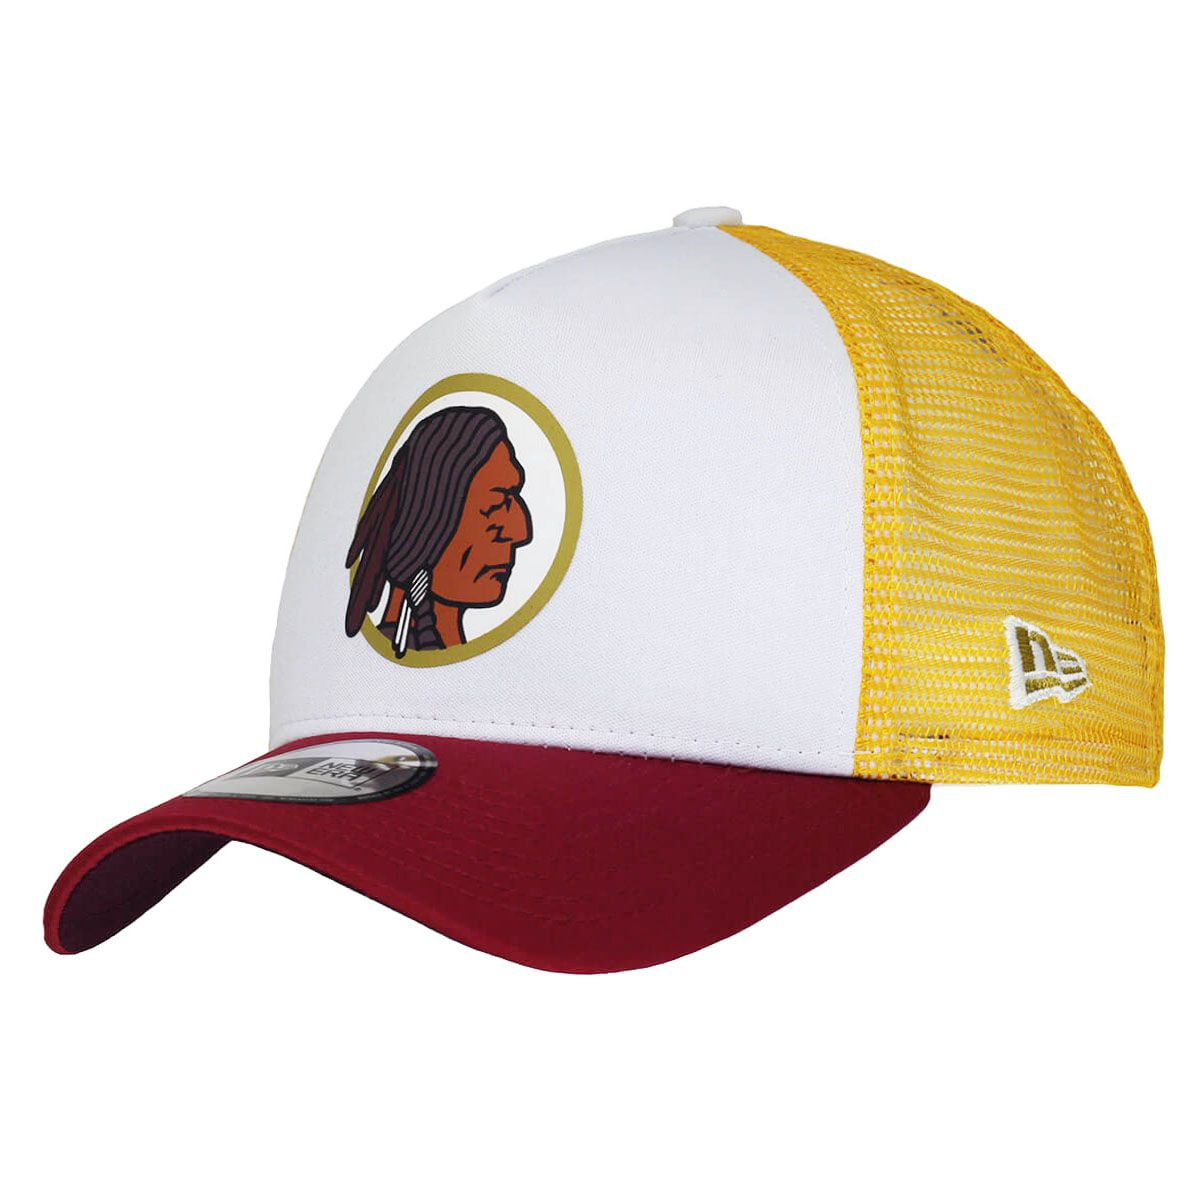 Boné New Era Aba Curva 940 SN NFL Redskins Trucker Throwback